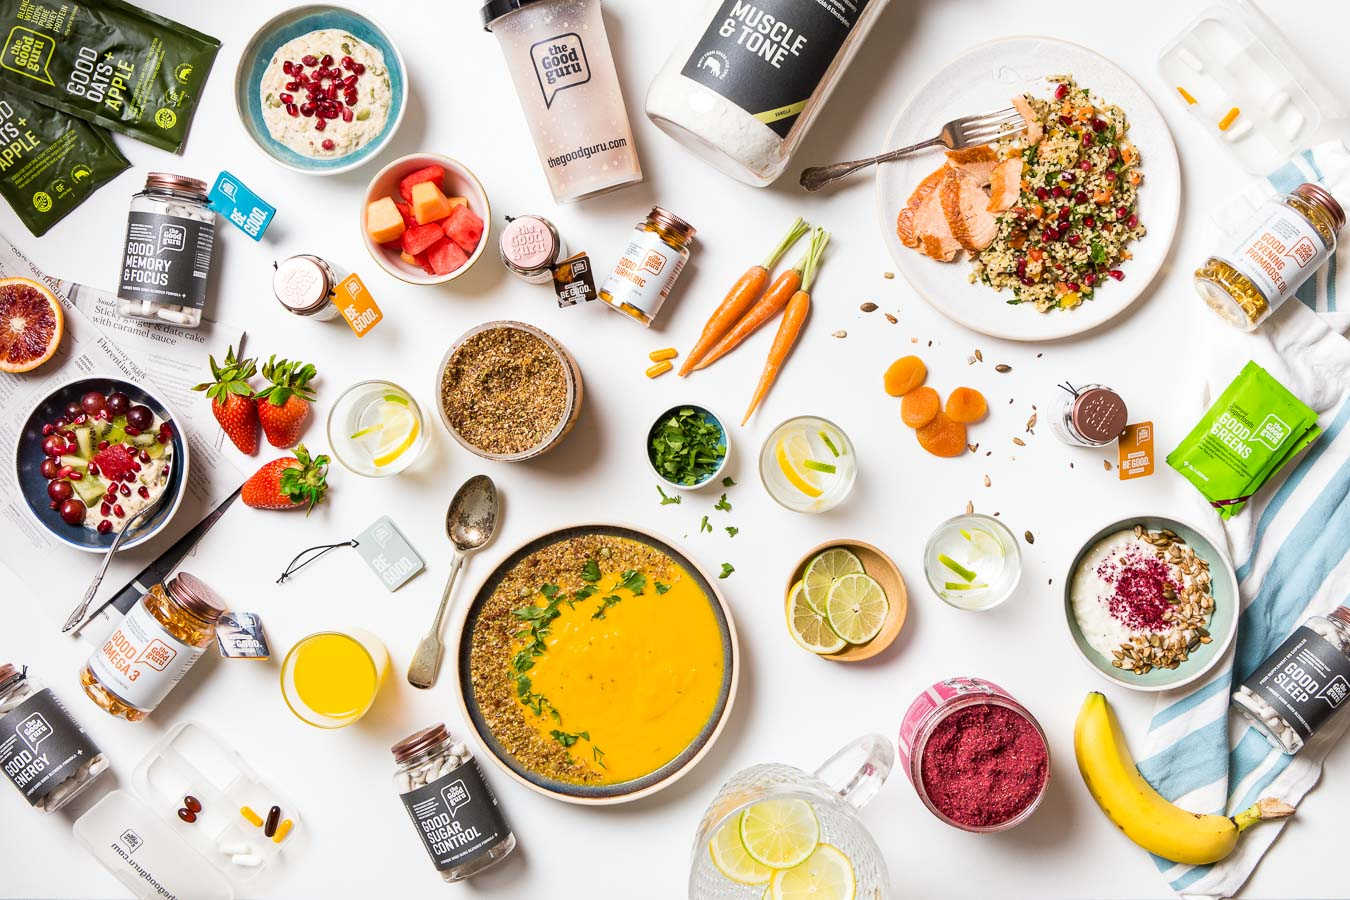 Flat lay of The Good Guru health products in the bottles, fresh strawberries, banana, mini carrots, bowl of yellow soup, seed and fruit breakfast bowls